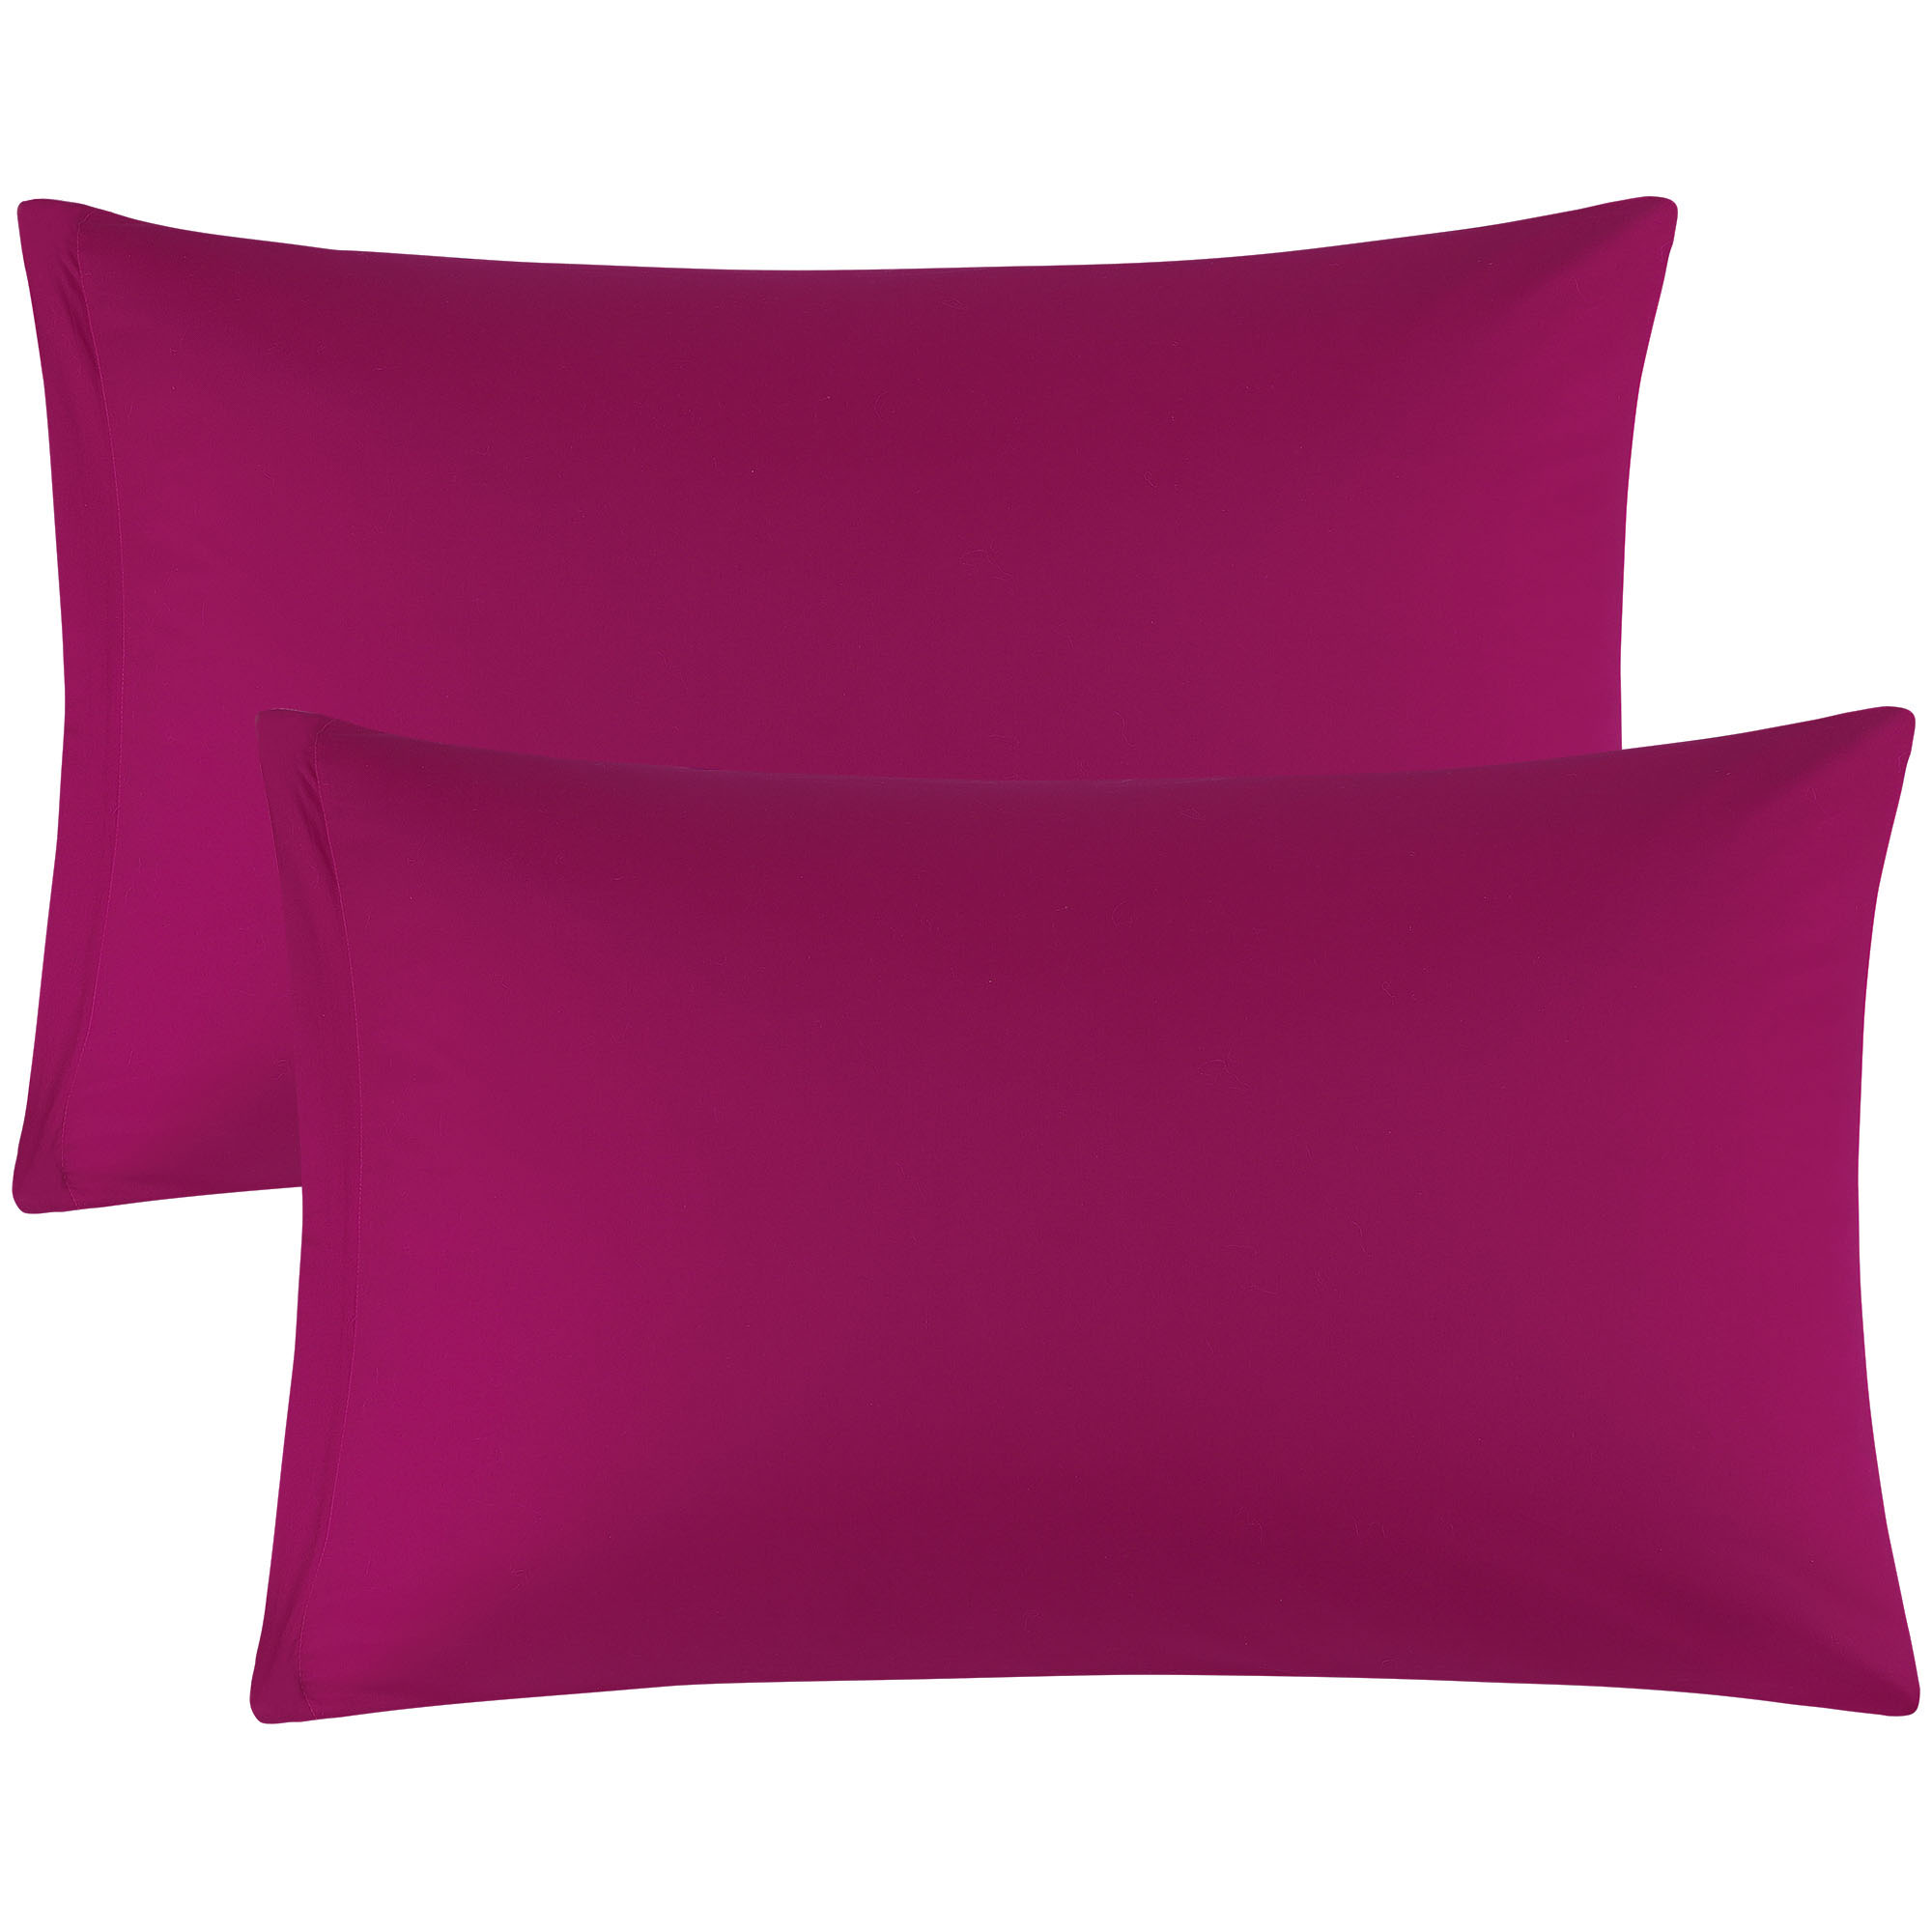 Zippered Cases Pillowcases Covers Egyptian Cotton 2-Pack (20 x 30 Inch, Fuchsia)